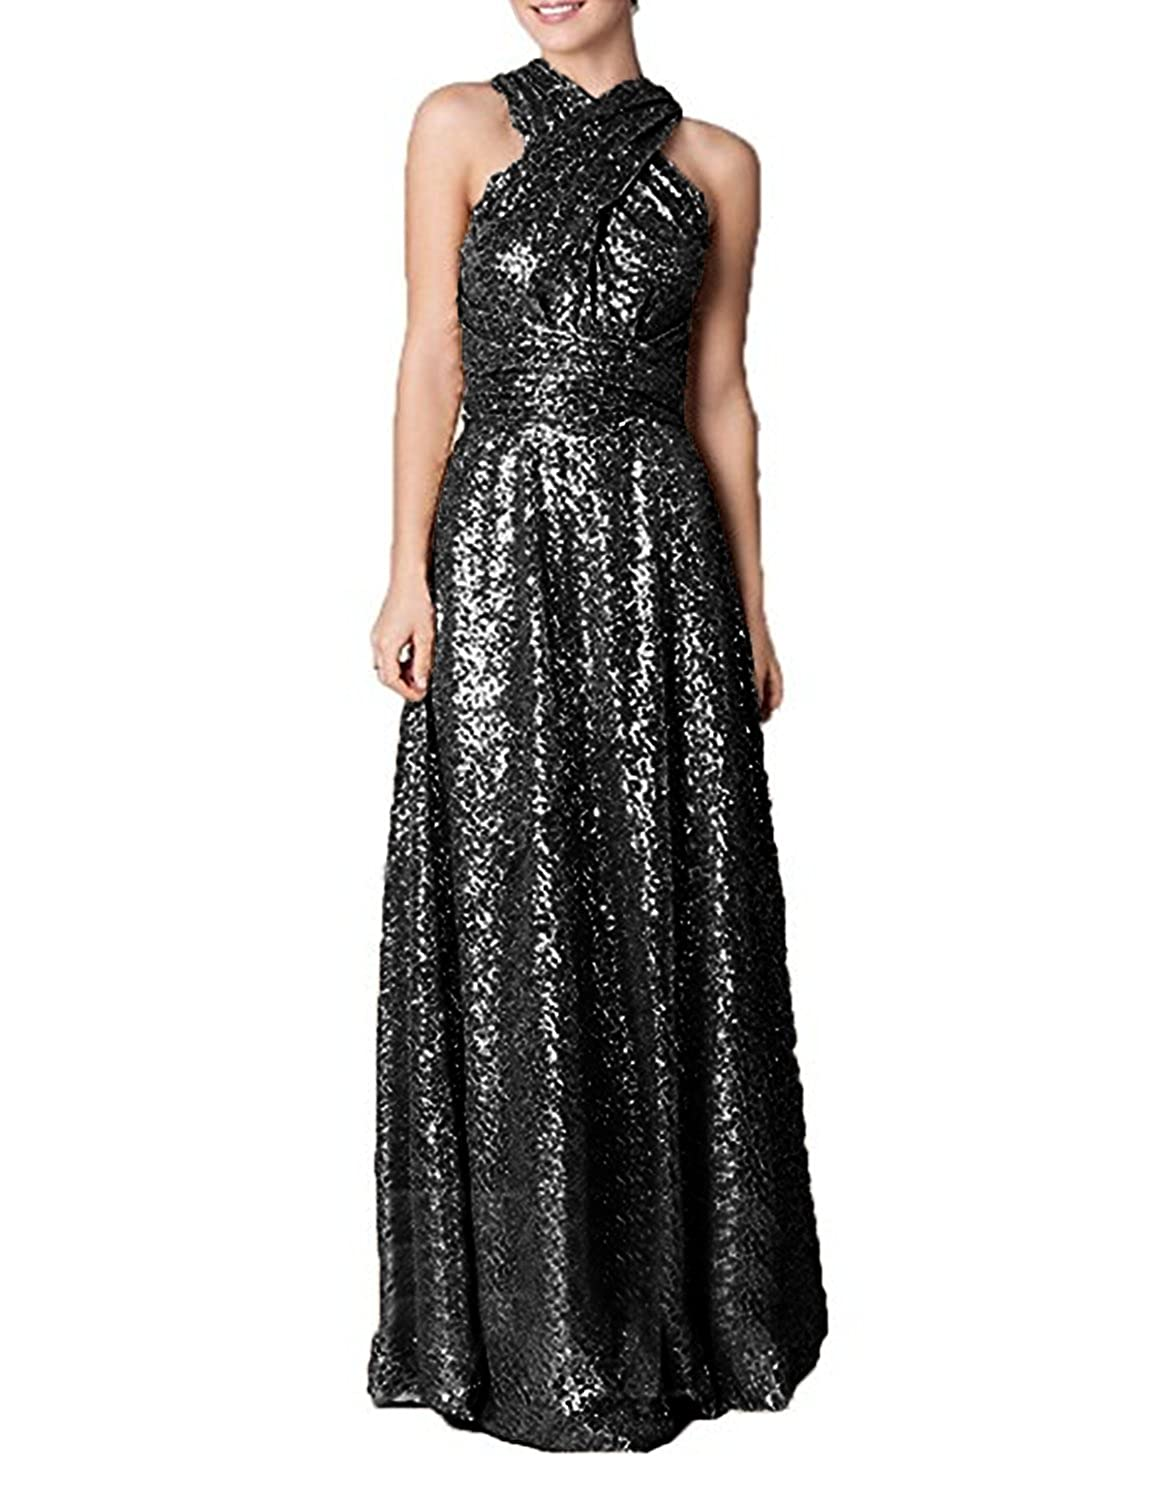 bfce3ae29be7 Amazon.com: Ruiyuhong Women's Rose Gold Sequin Bridesmaid Dress Wedding  Party Gown LH311: Clothing